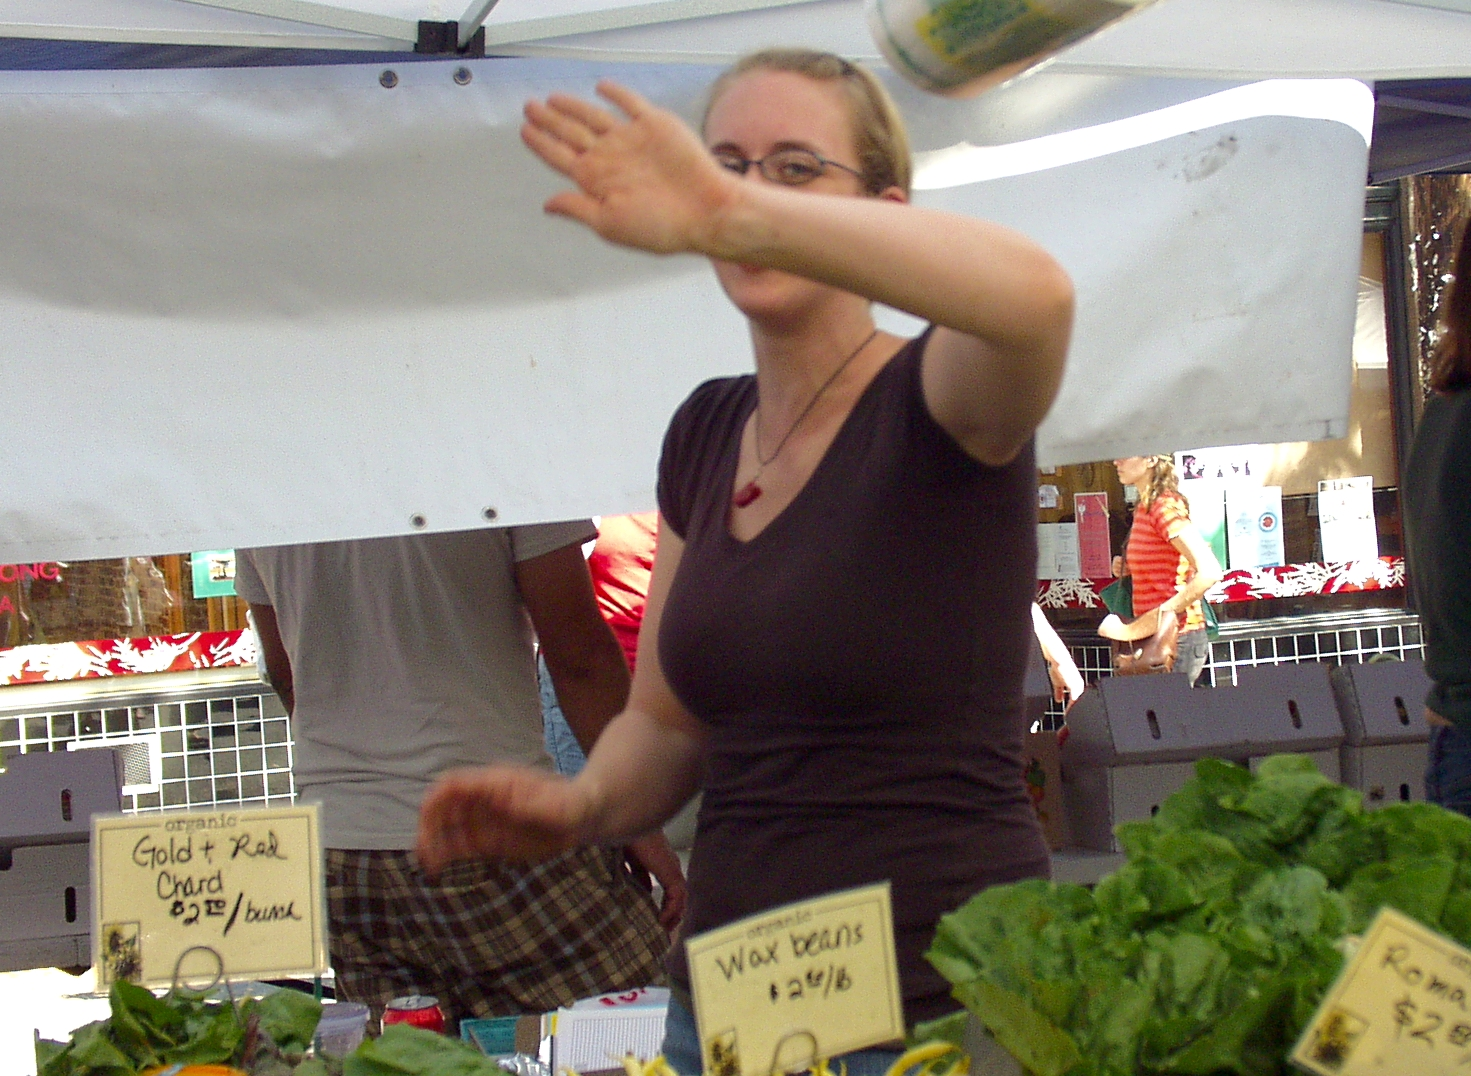 Valerie from Boistfort Valley Farm waves off the Market paparazzi. Photo copyright 2009 by Zachary D. Lyons.